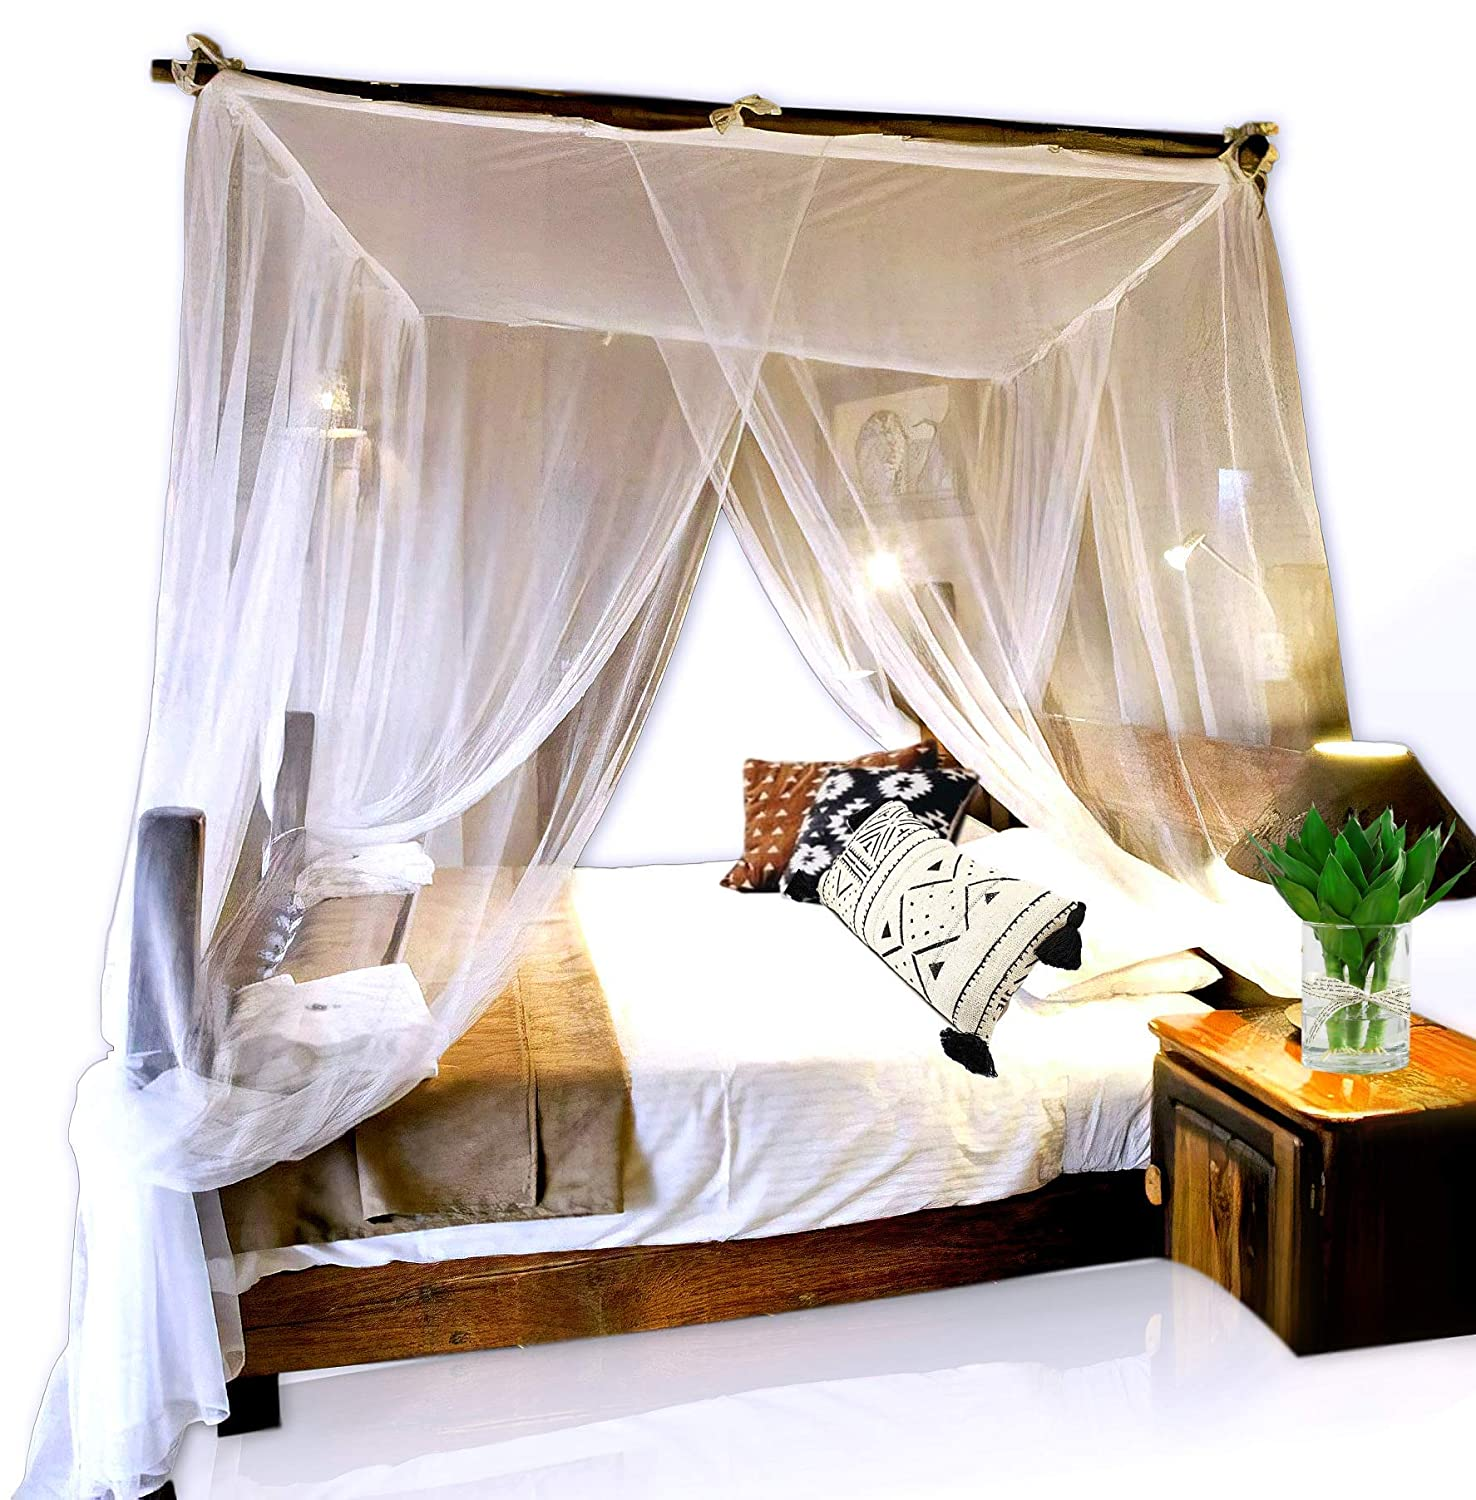 King Size Bed.Jumbo Mosquito Netting Canopy For Queen King Size Bed Super Thin Mesh Net Lets Breeze In And Bugs Out Protect Your Sleep From Mosquitoes In An